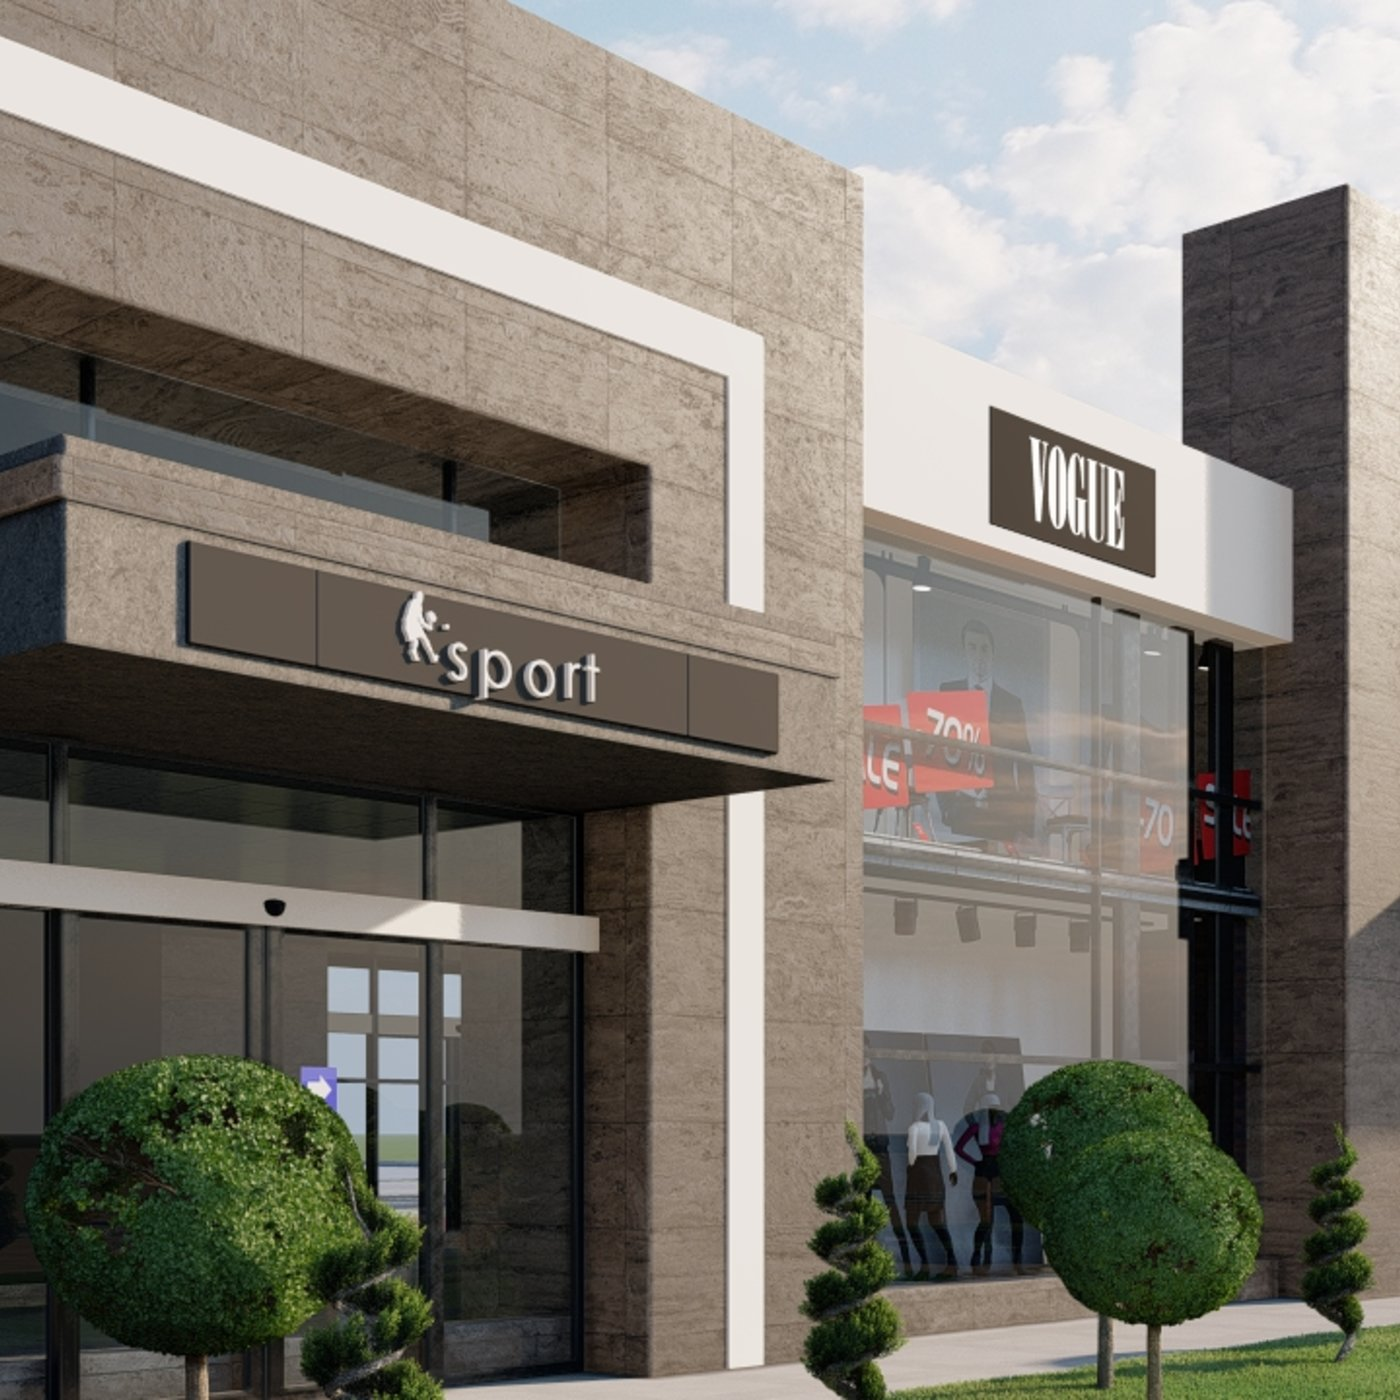 The 2-storey shopping mall includes